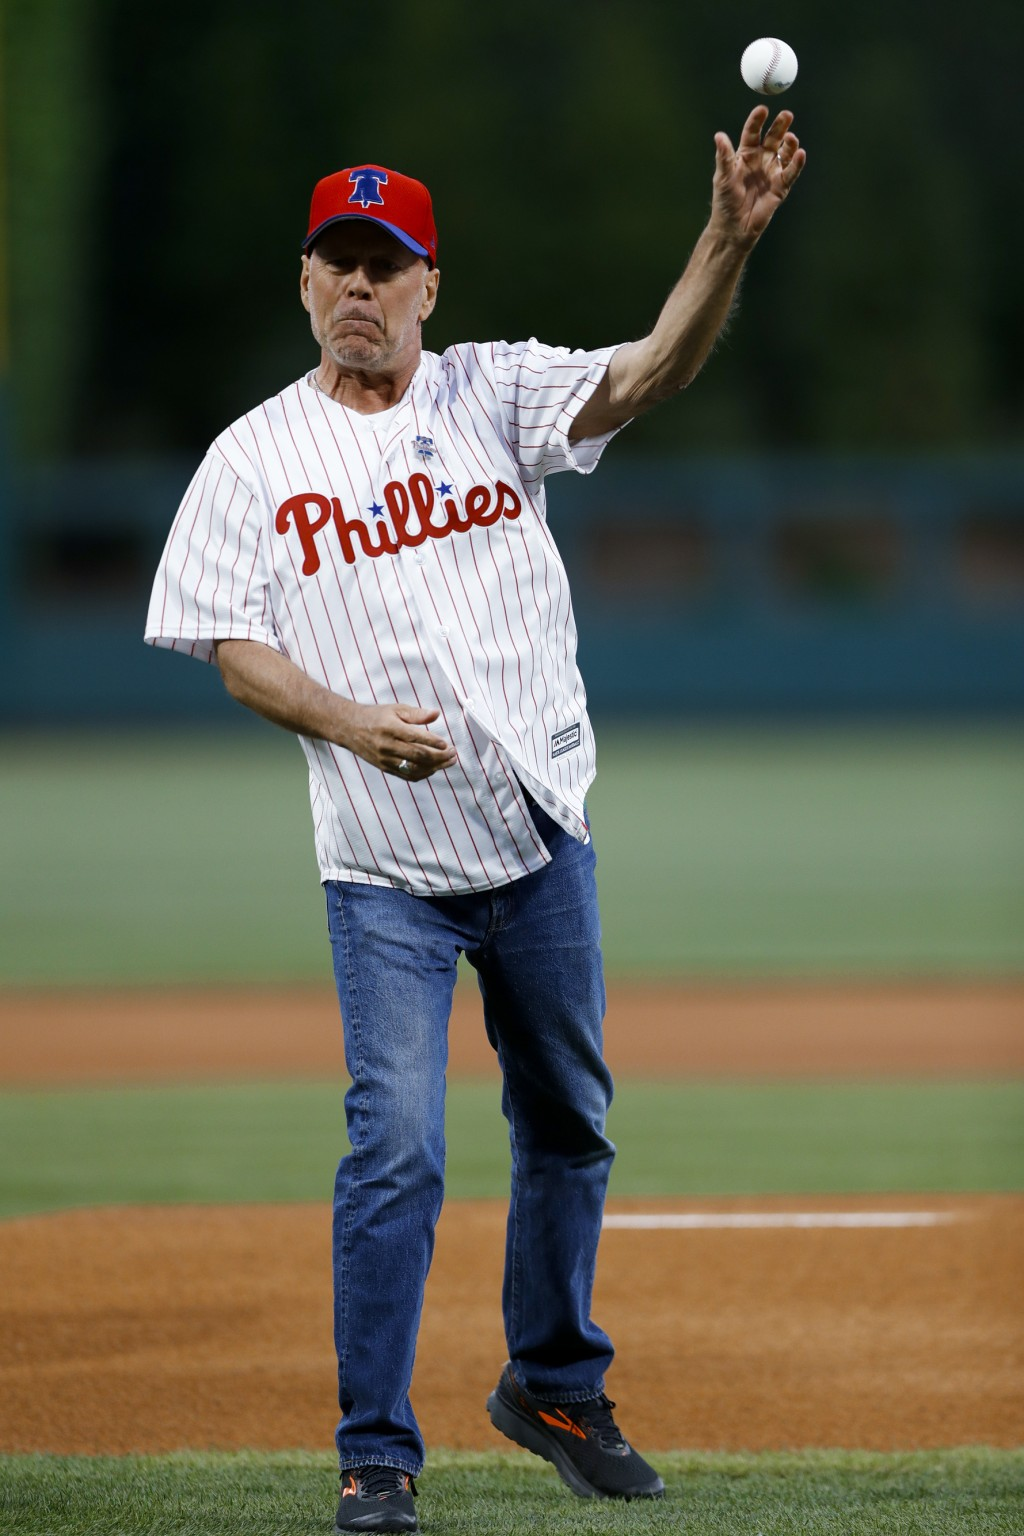 Actor Bruce Willis throws out a first pitch before a baseball game between the Philadelphia Phillies and the Milwaukee Brewers, Wednesday, May 15, 201